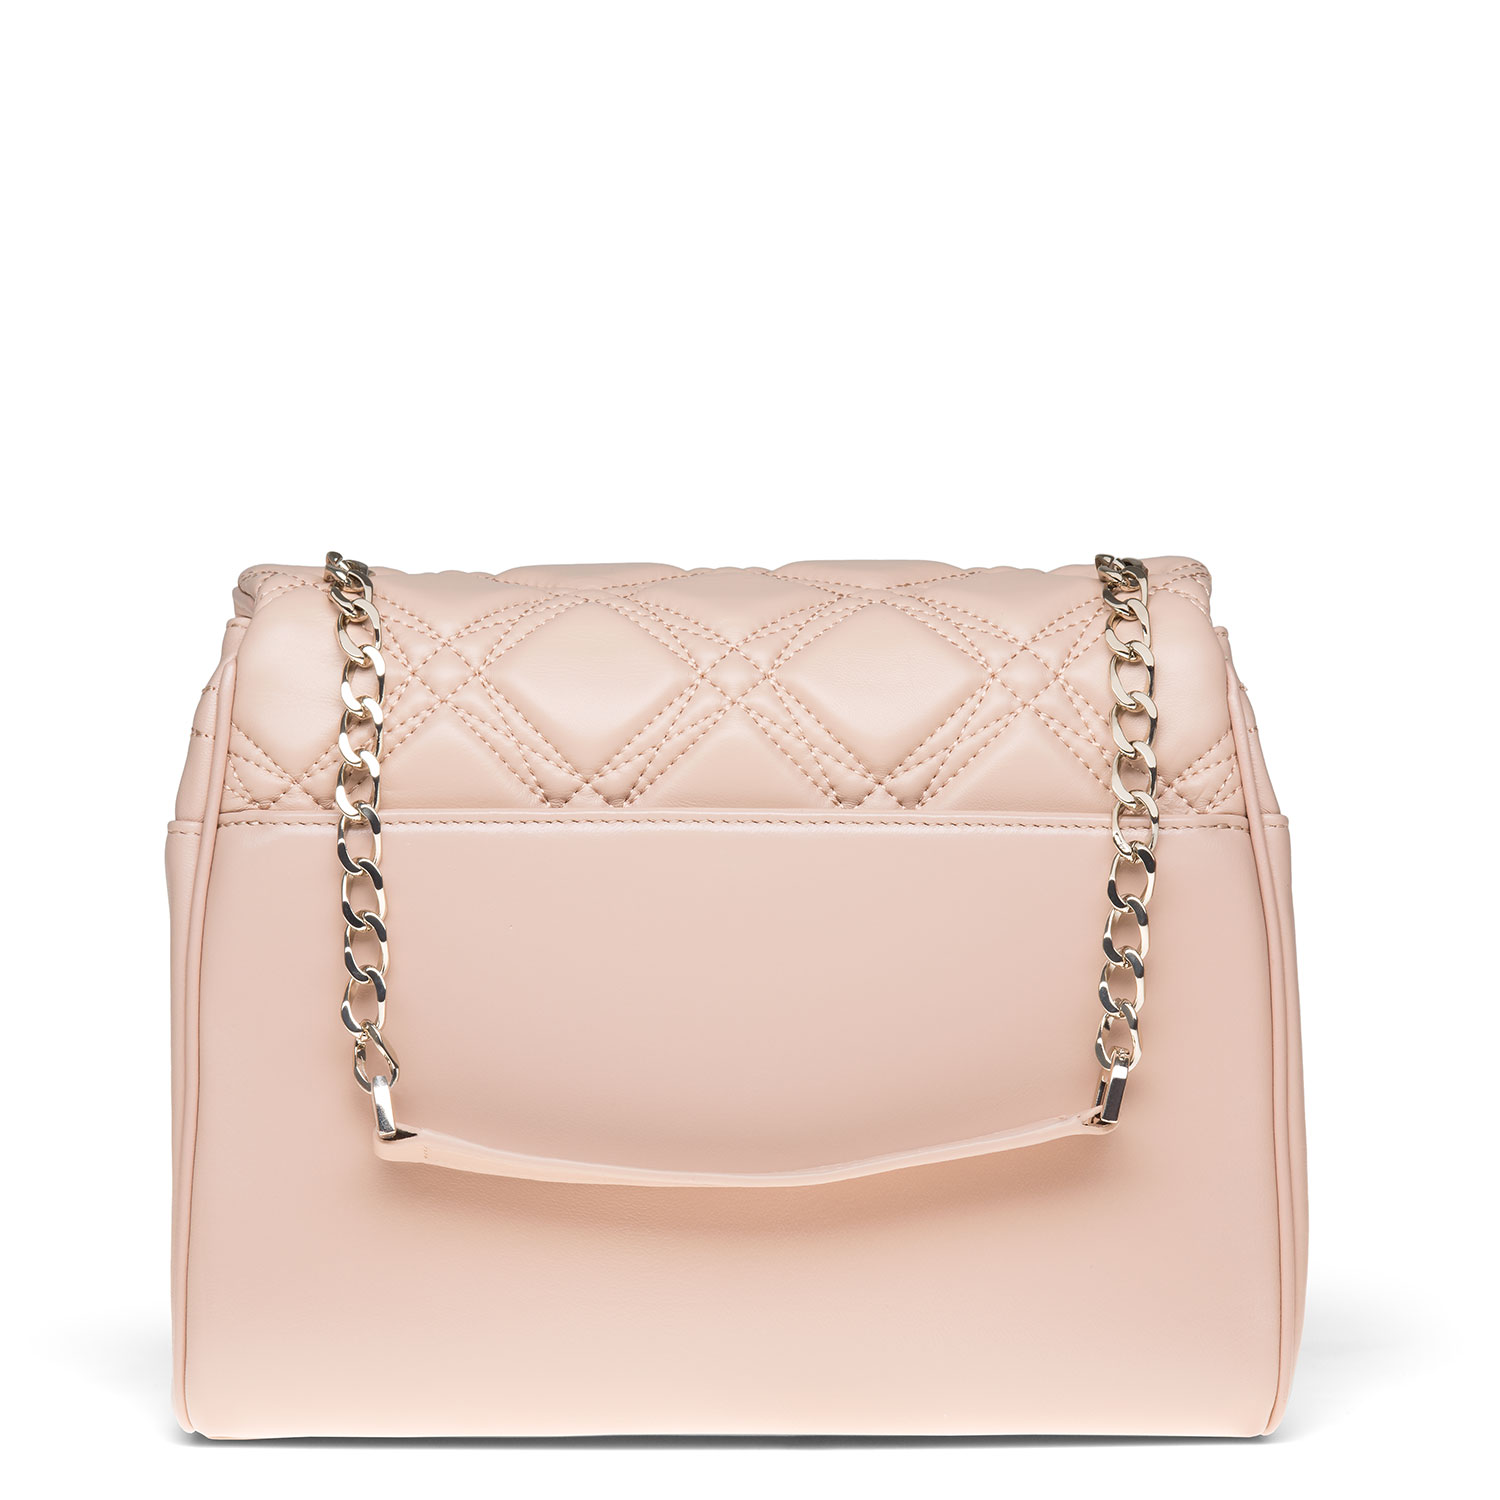 Women's bag PAZOLINI SB-N0208-3